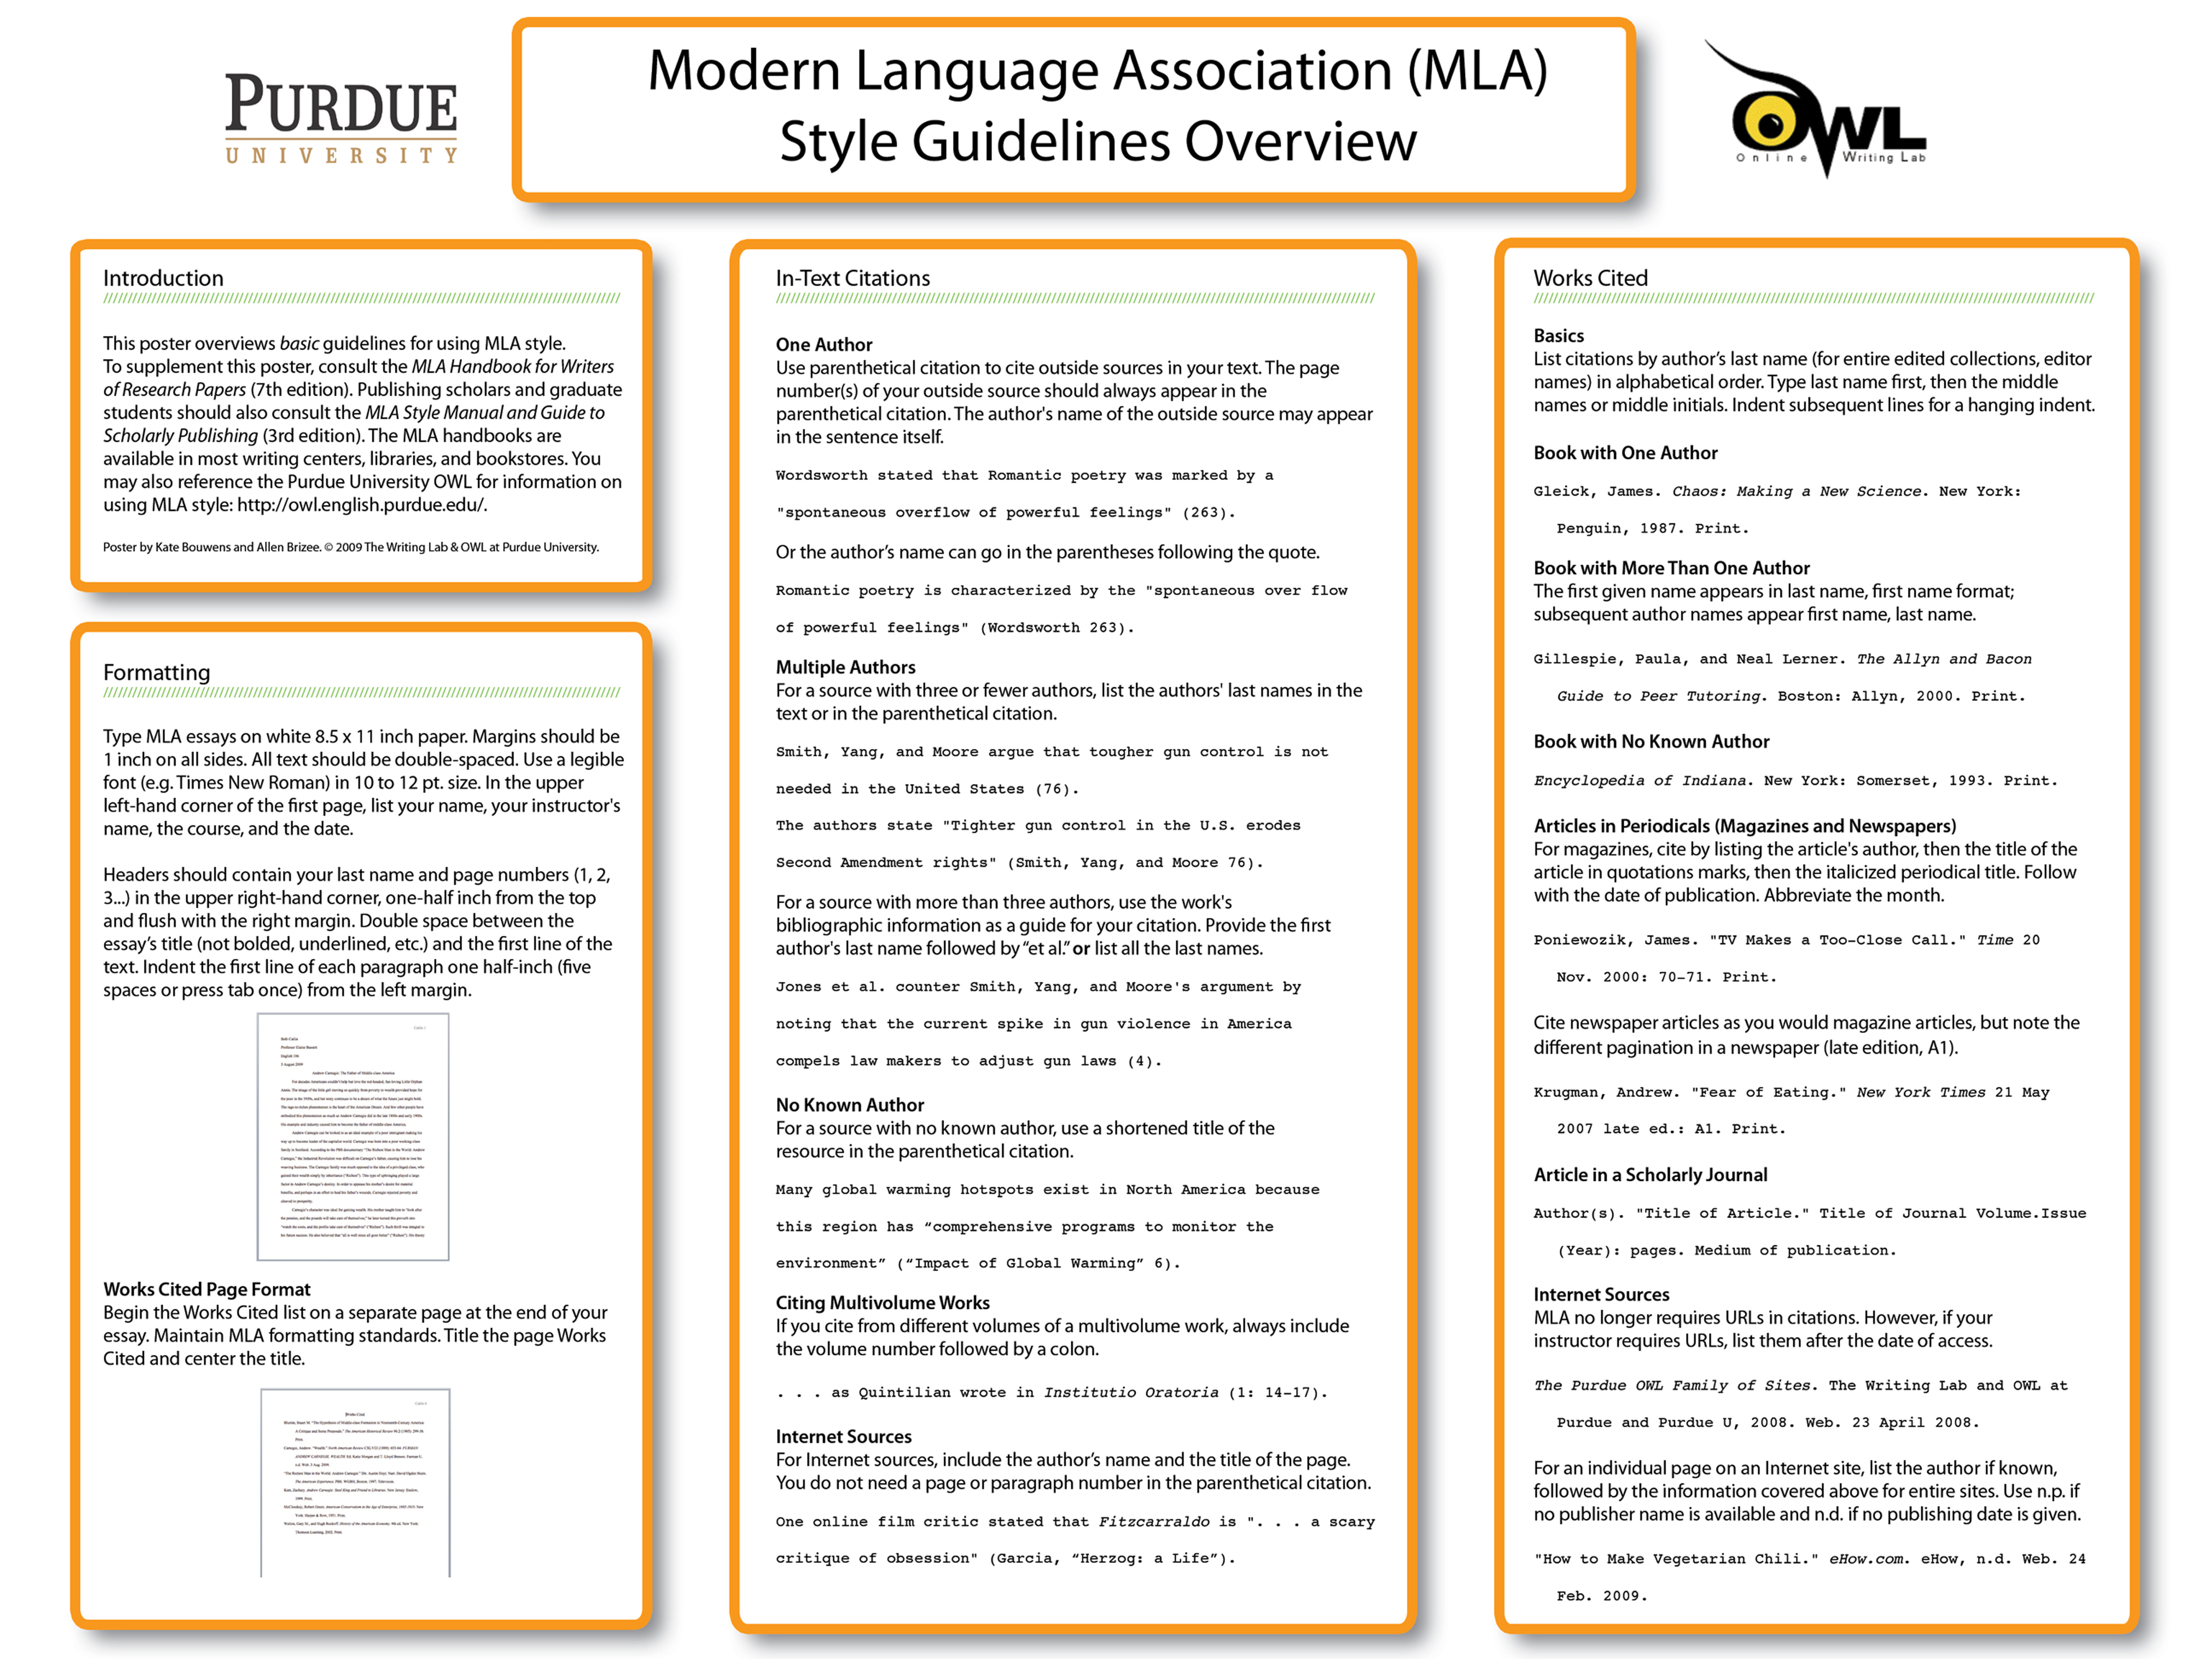 021 In Text Citation Book Mla Mlaposter09 Research Best Page Number Comic Full